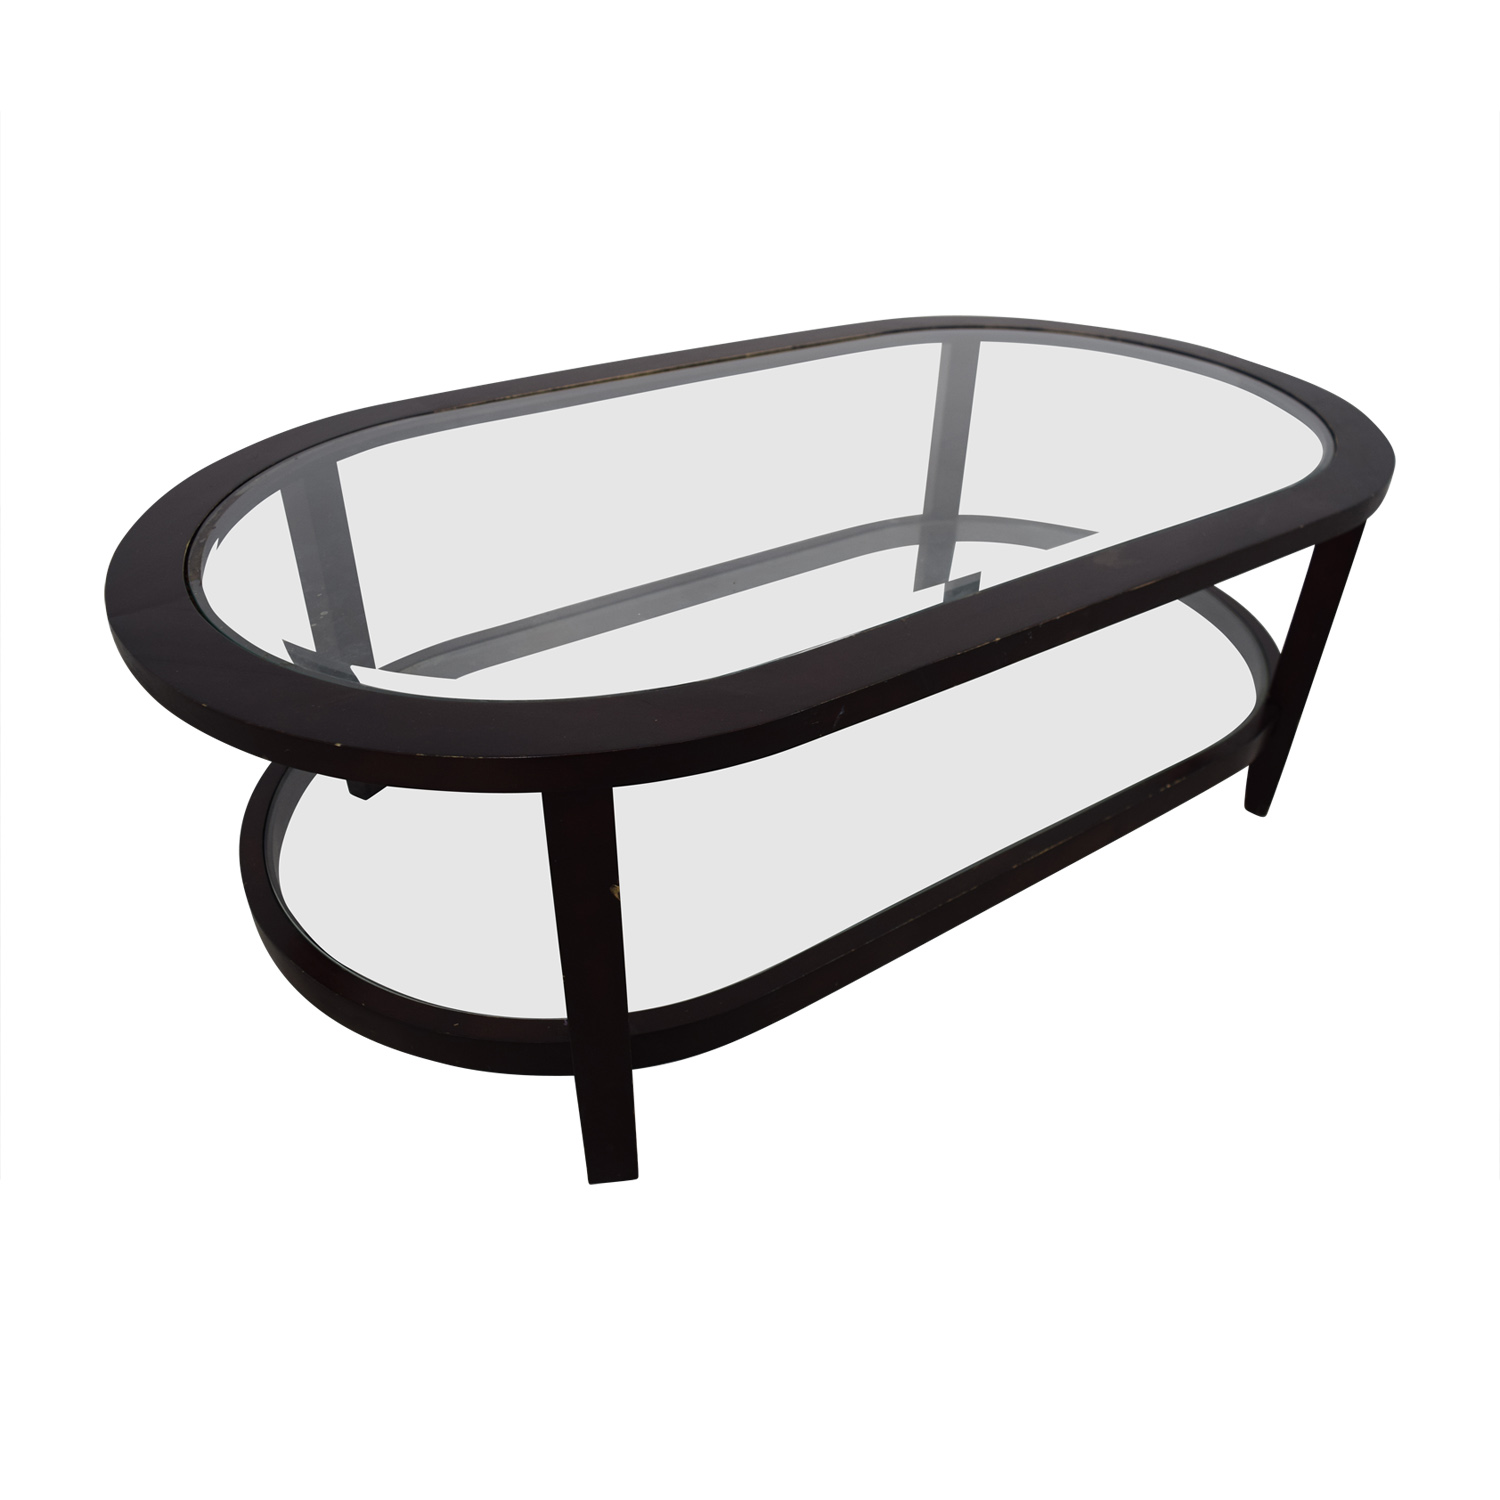 Crate & Barrel Crate & Barrel Oval Glass Coffee Table dimensions